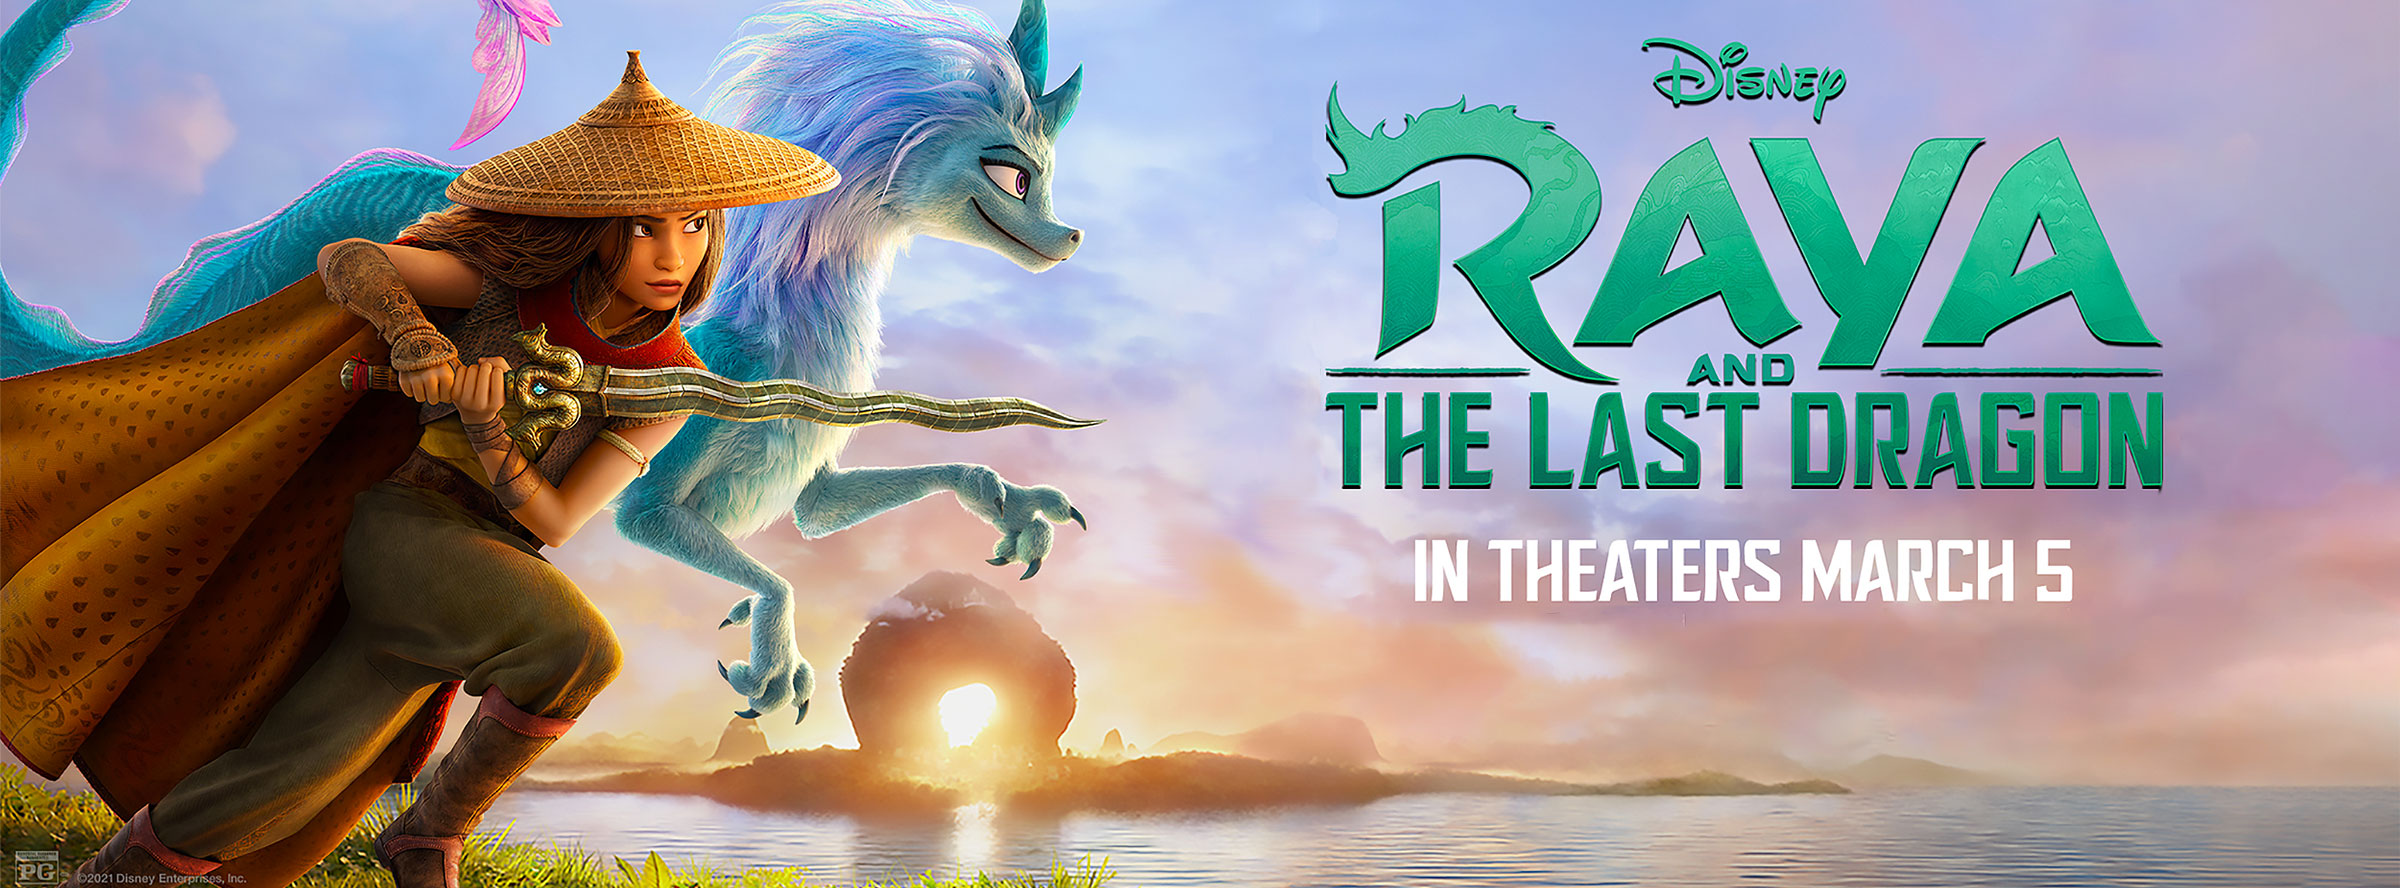 Raya-and-the-Last-Dragon-Trailer-and-Info